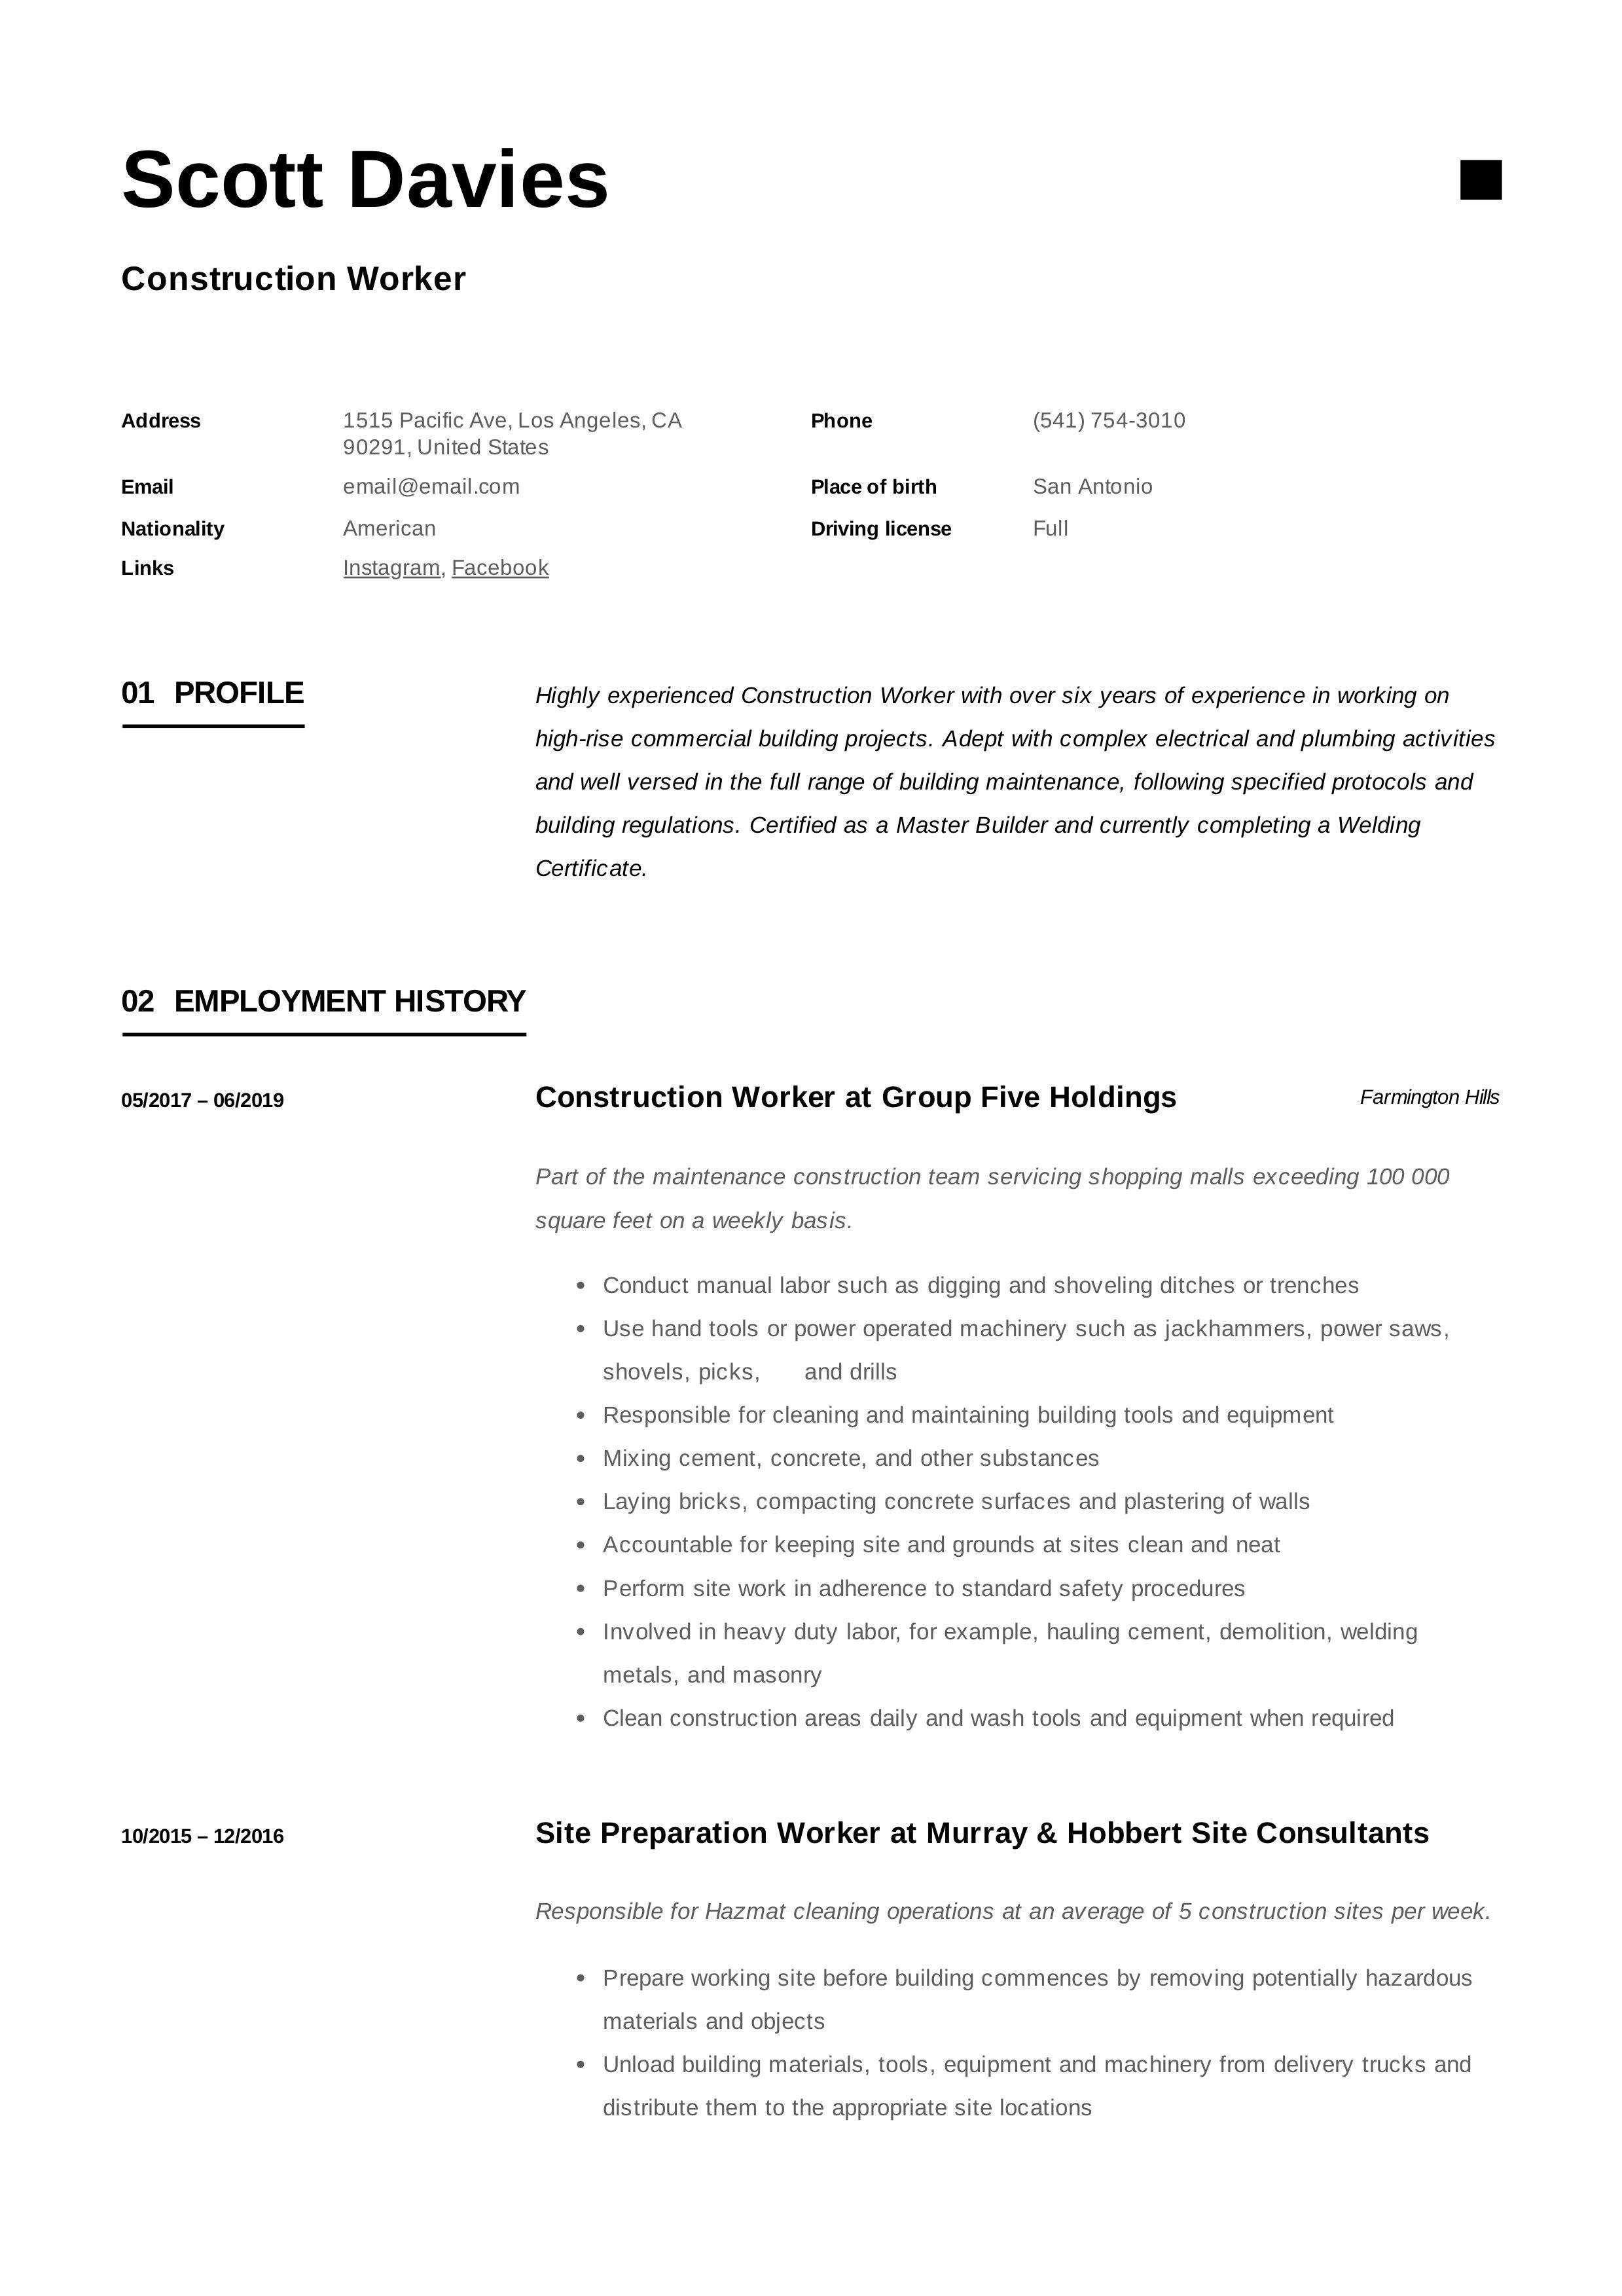 Construction worker resume writing guide 12 templates